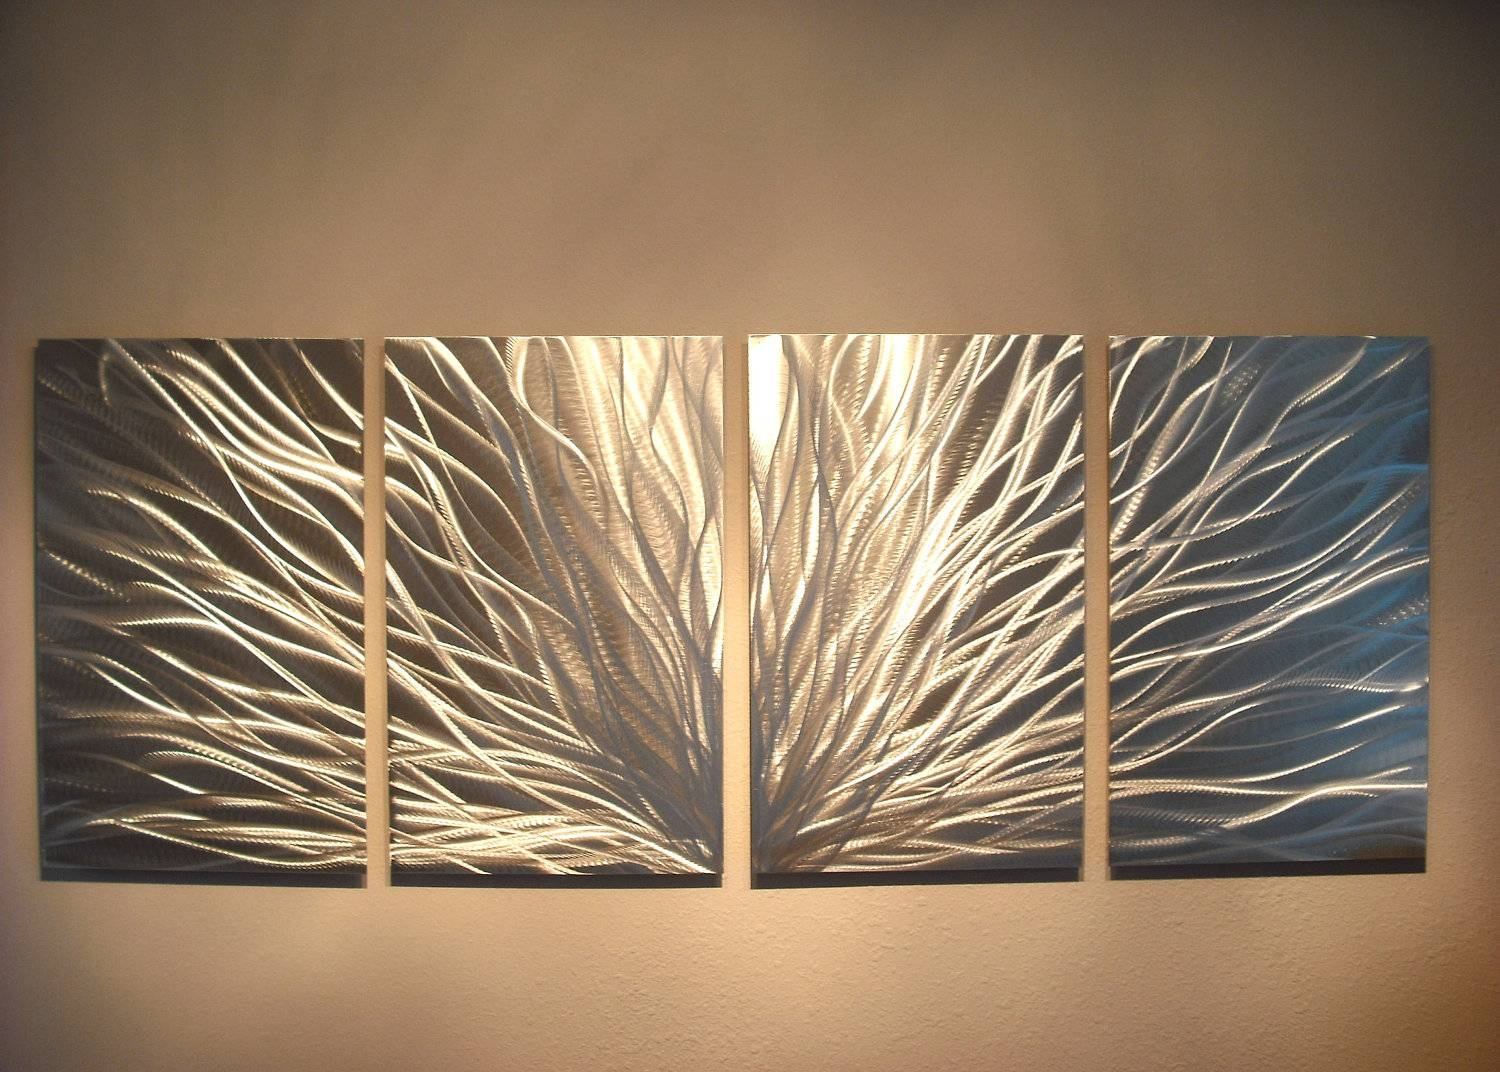 Metal Wall Art Decor Abstract Aluminum Contemporary Modern Inside Latest Giant Metal Wall Art (View 5 of 20)